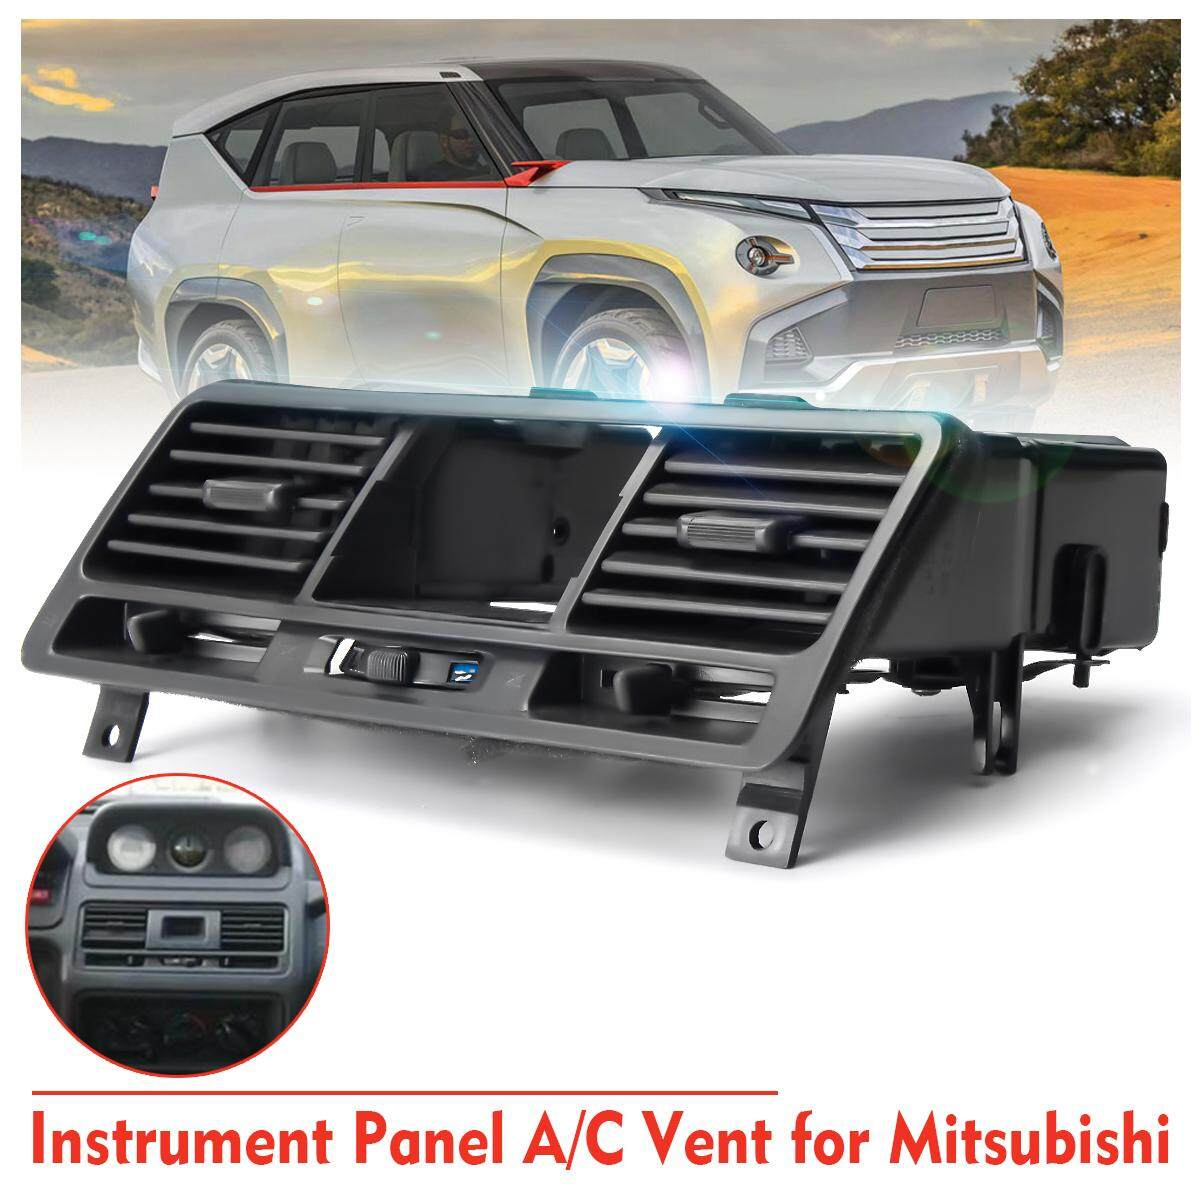 Dashboard Air Vent Outlet Panel Mr308038 For Mitsubishi Pajero Montero V31 V32 By Freebang.